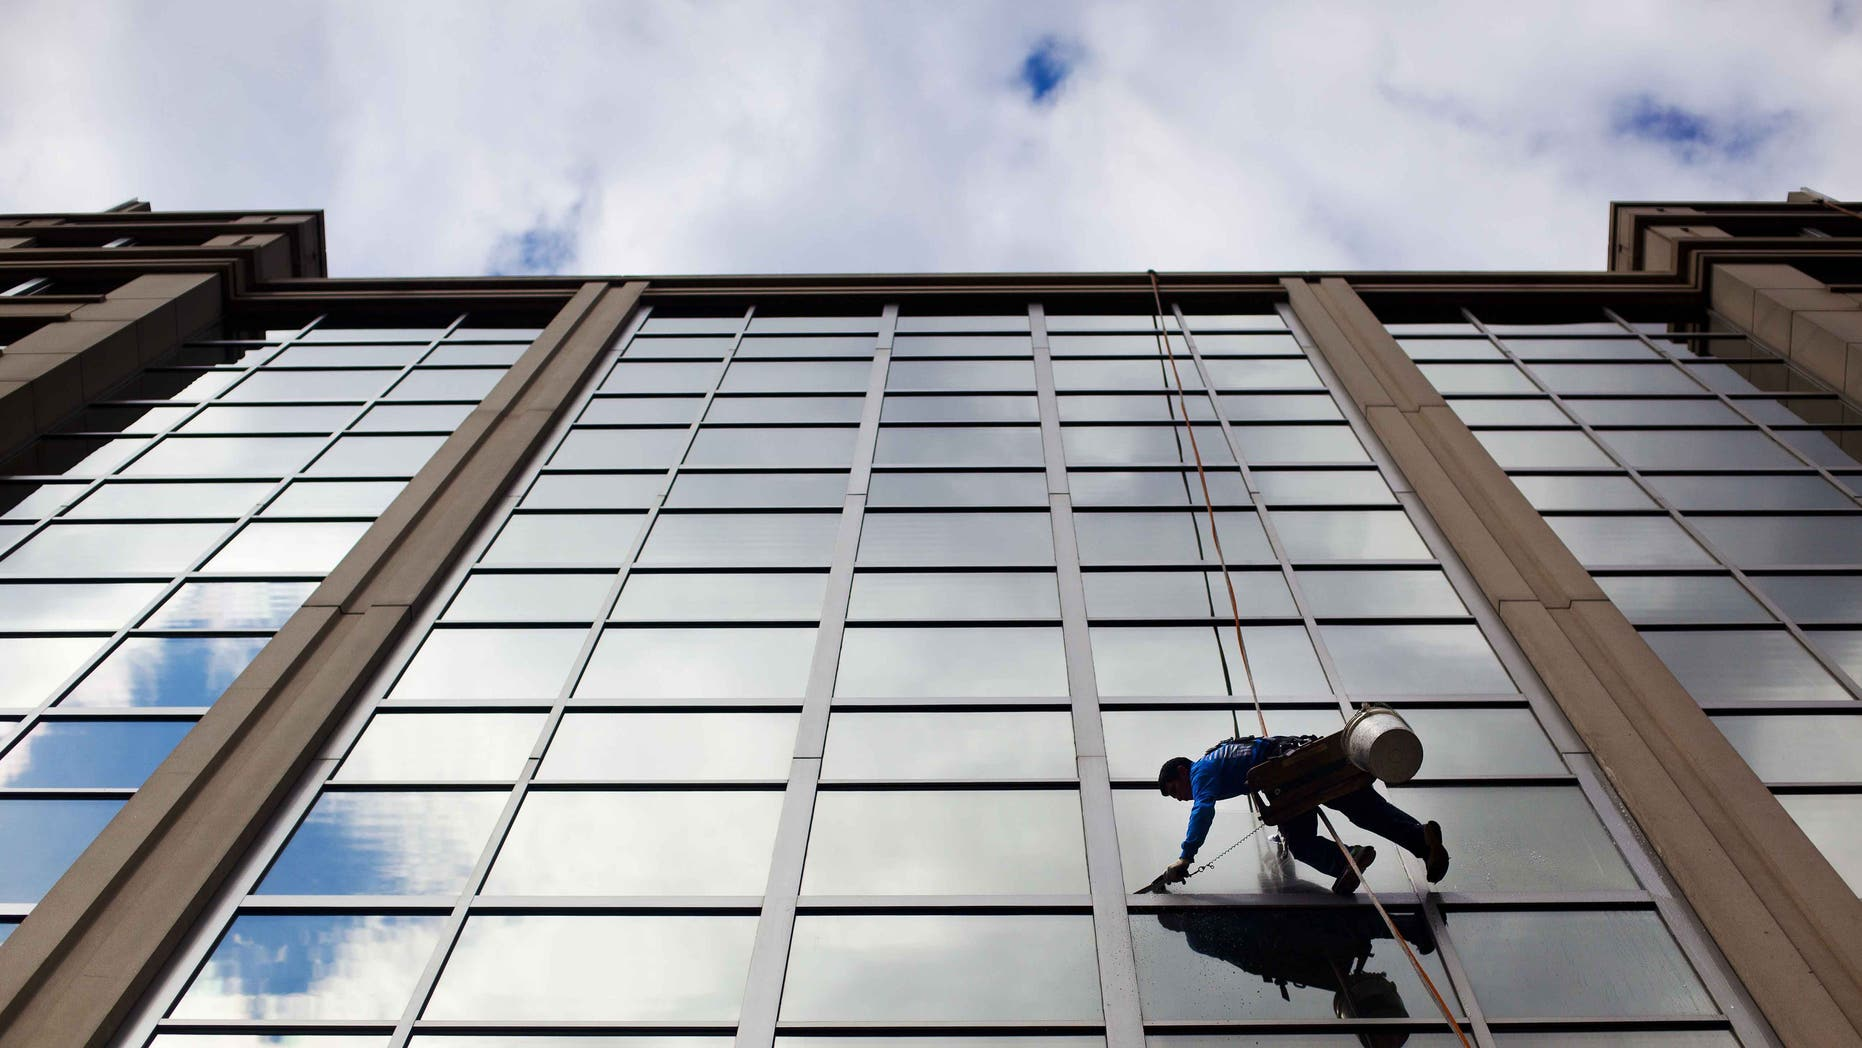 FILE - In this April 23, 2015 file photo, a window washer cleans the windows of an office building in downtown Washington. The U.S. government issues the May jobs report on Friday, June 5, 2015. (AP Photo/Pablo Martinez Monsivais, File)